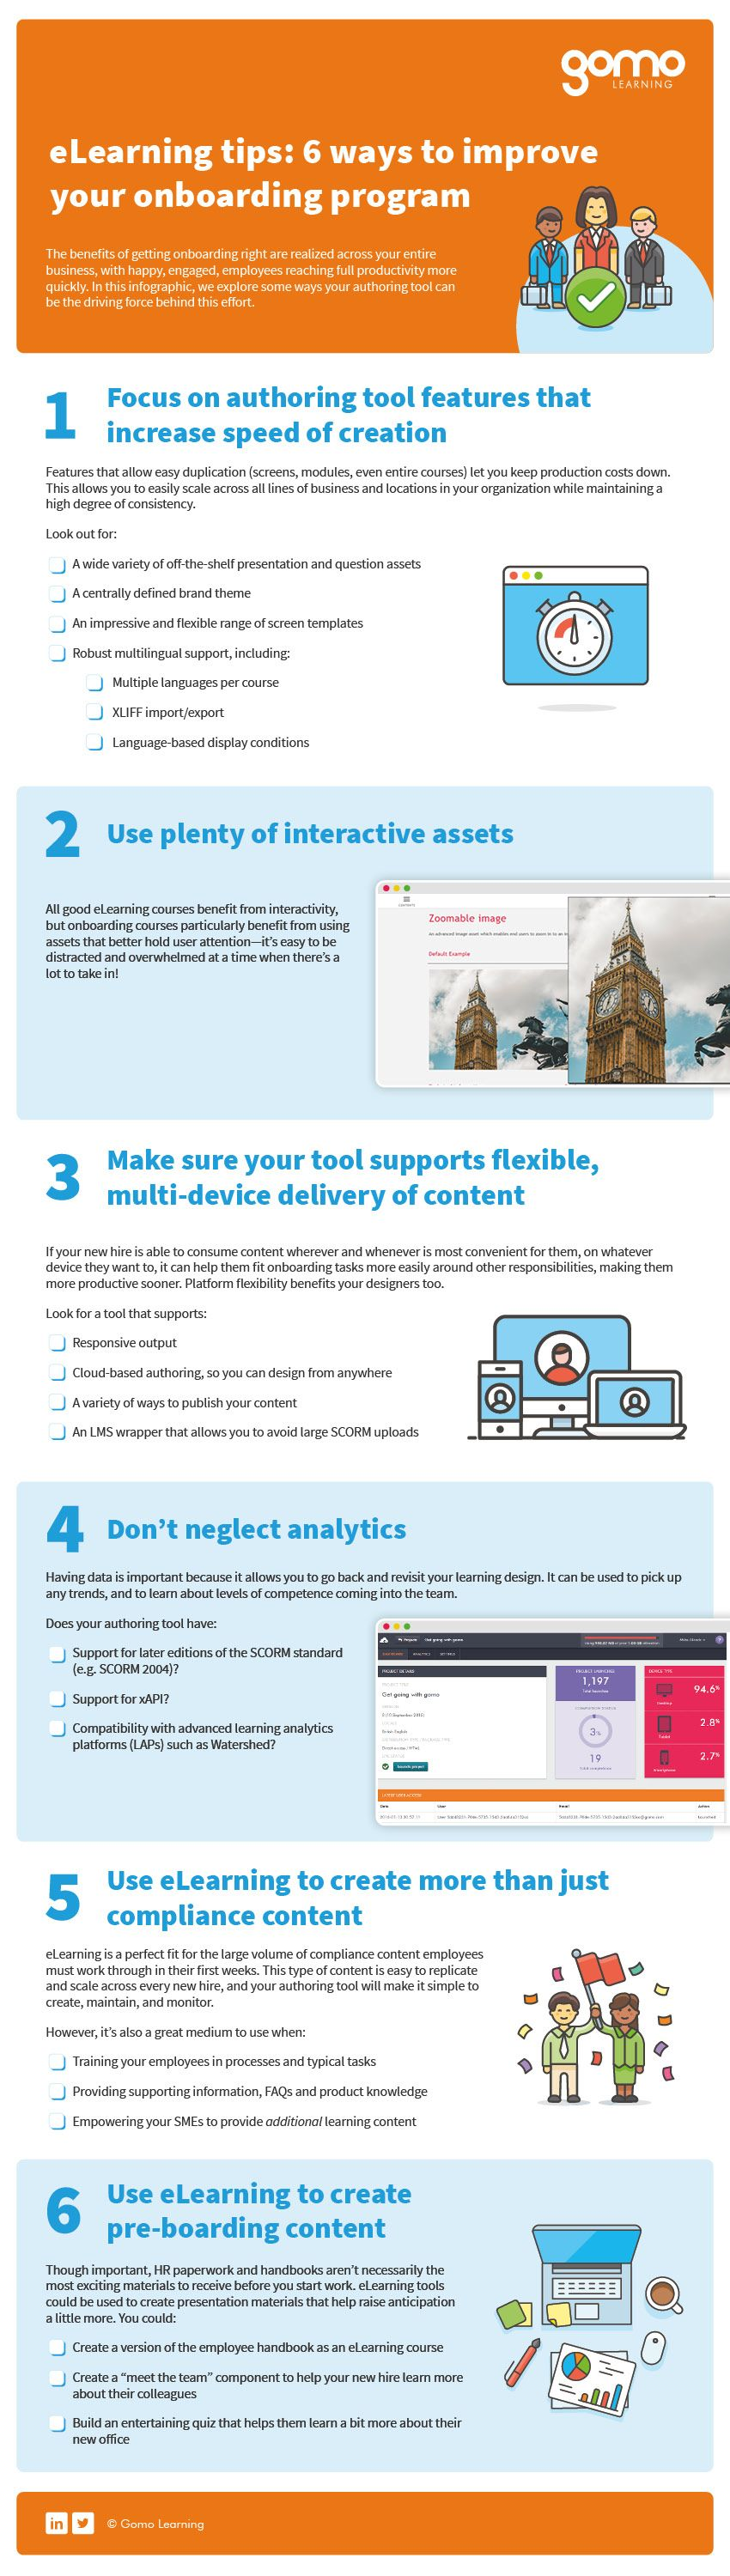 Full-size version of 6 wars to improve your onboarding program infographic